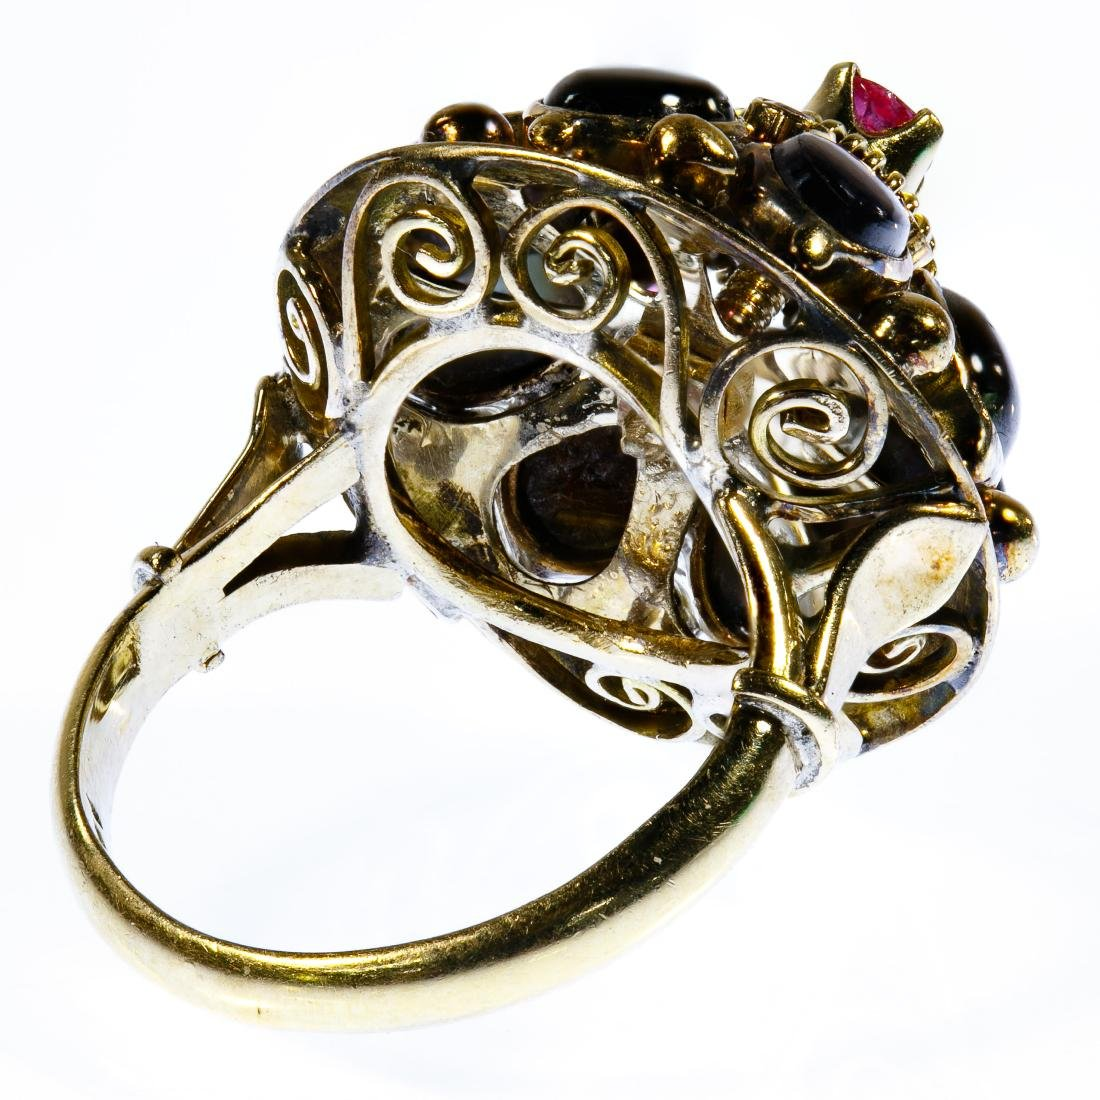 14k Gold, Ruby and Sapphire Ring - 3